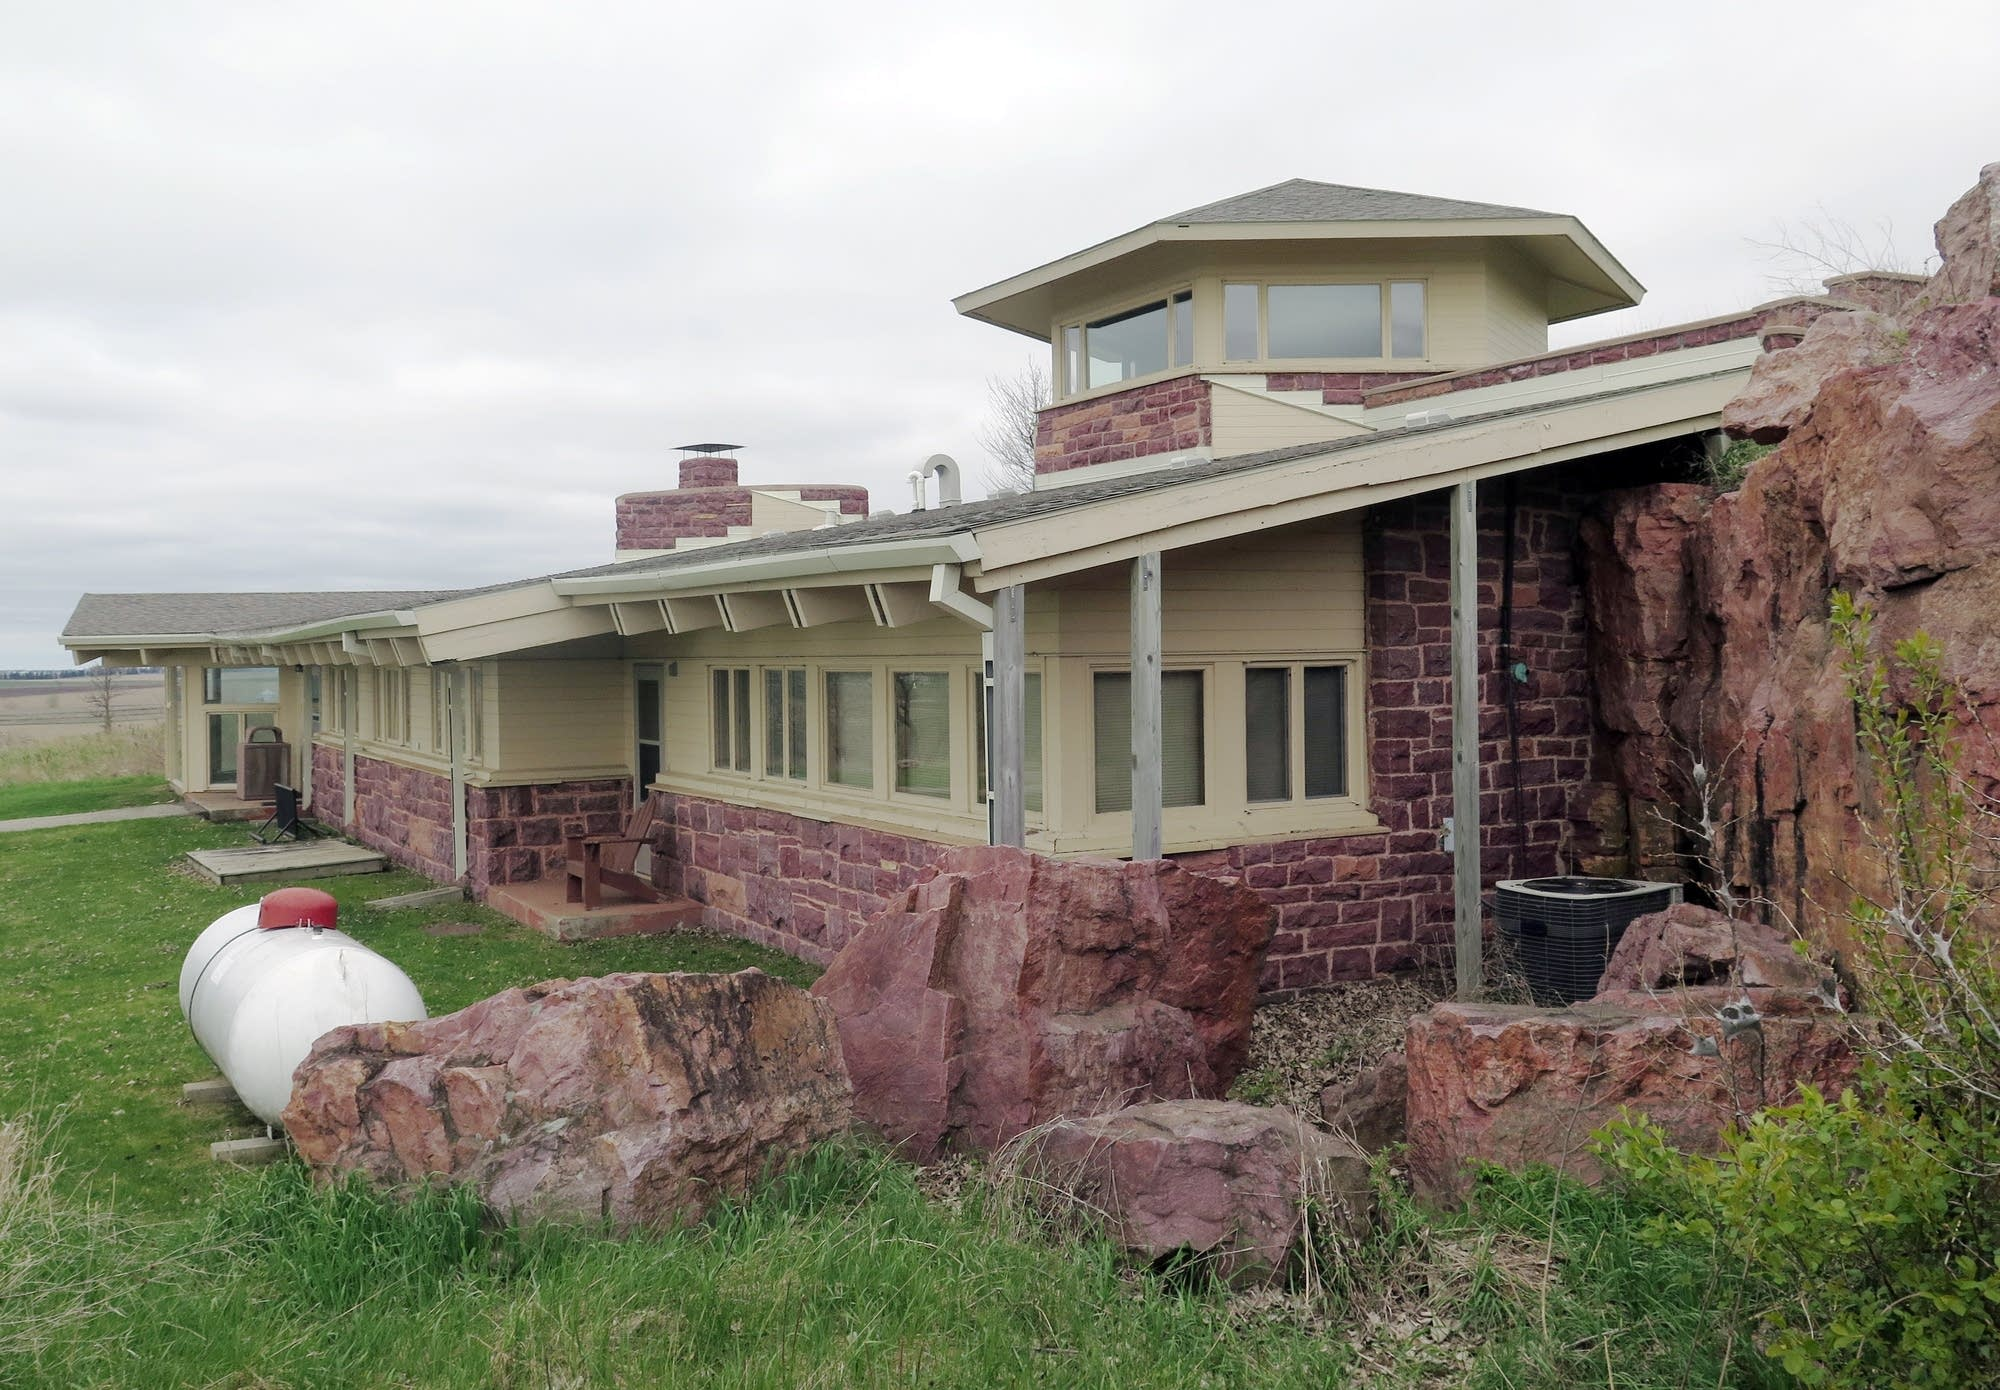 Author Frederick Manfred used a rock cliff for the back wall of the house.